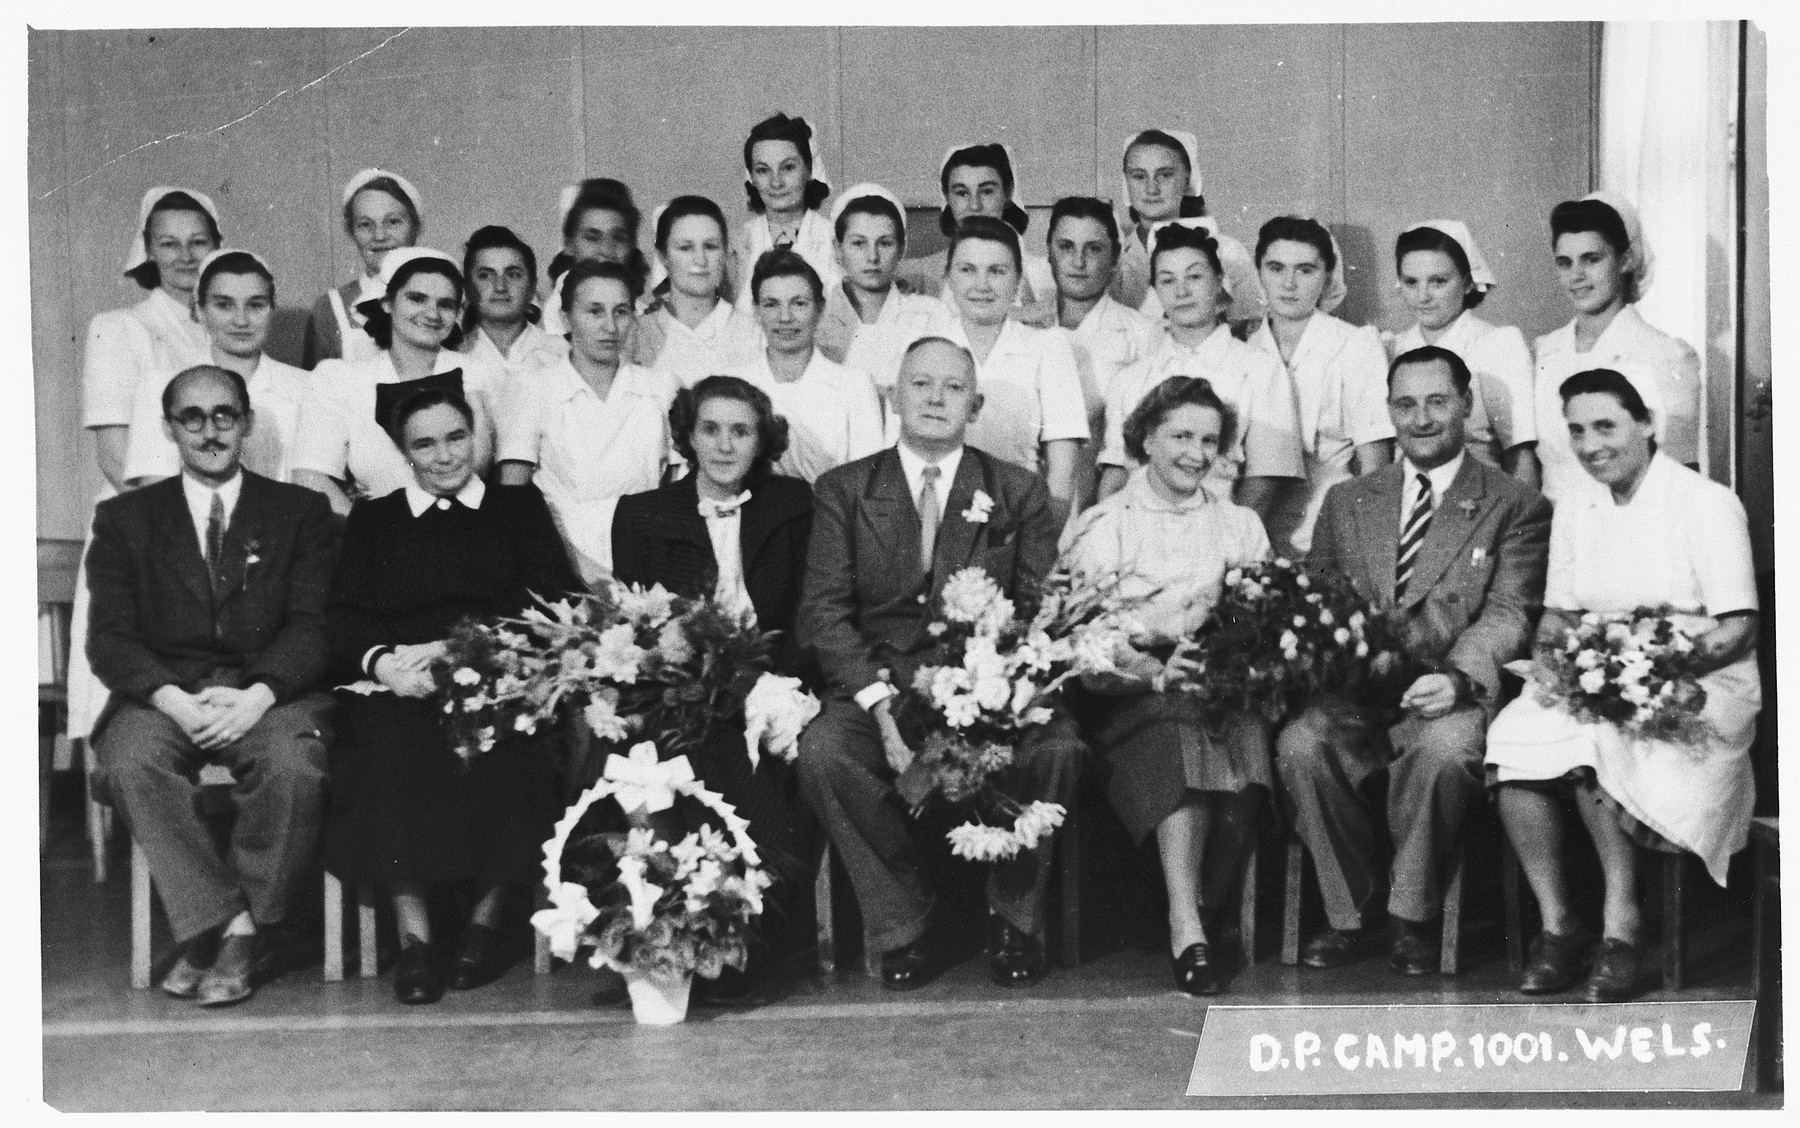 Graduation exercises of the nursing school in Wels.  Those pictured include Yehudit Wagner.